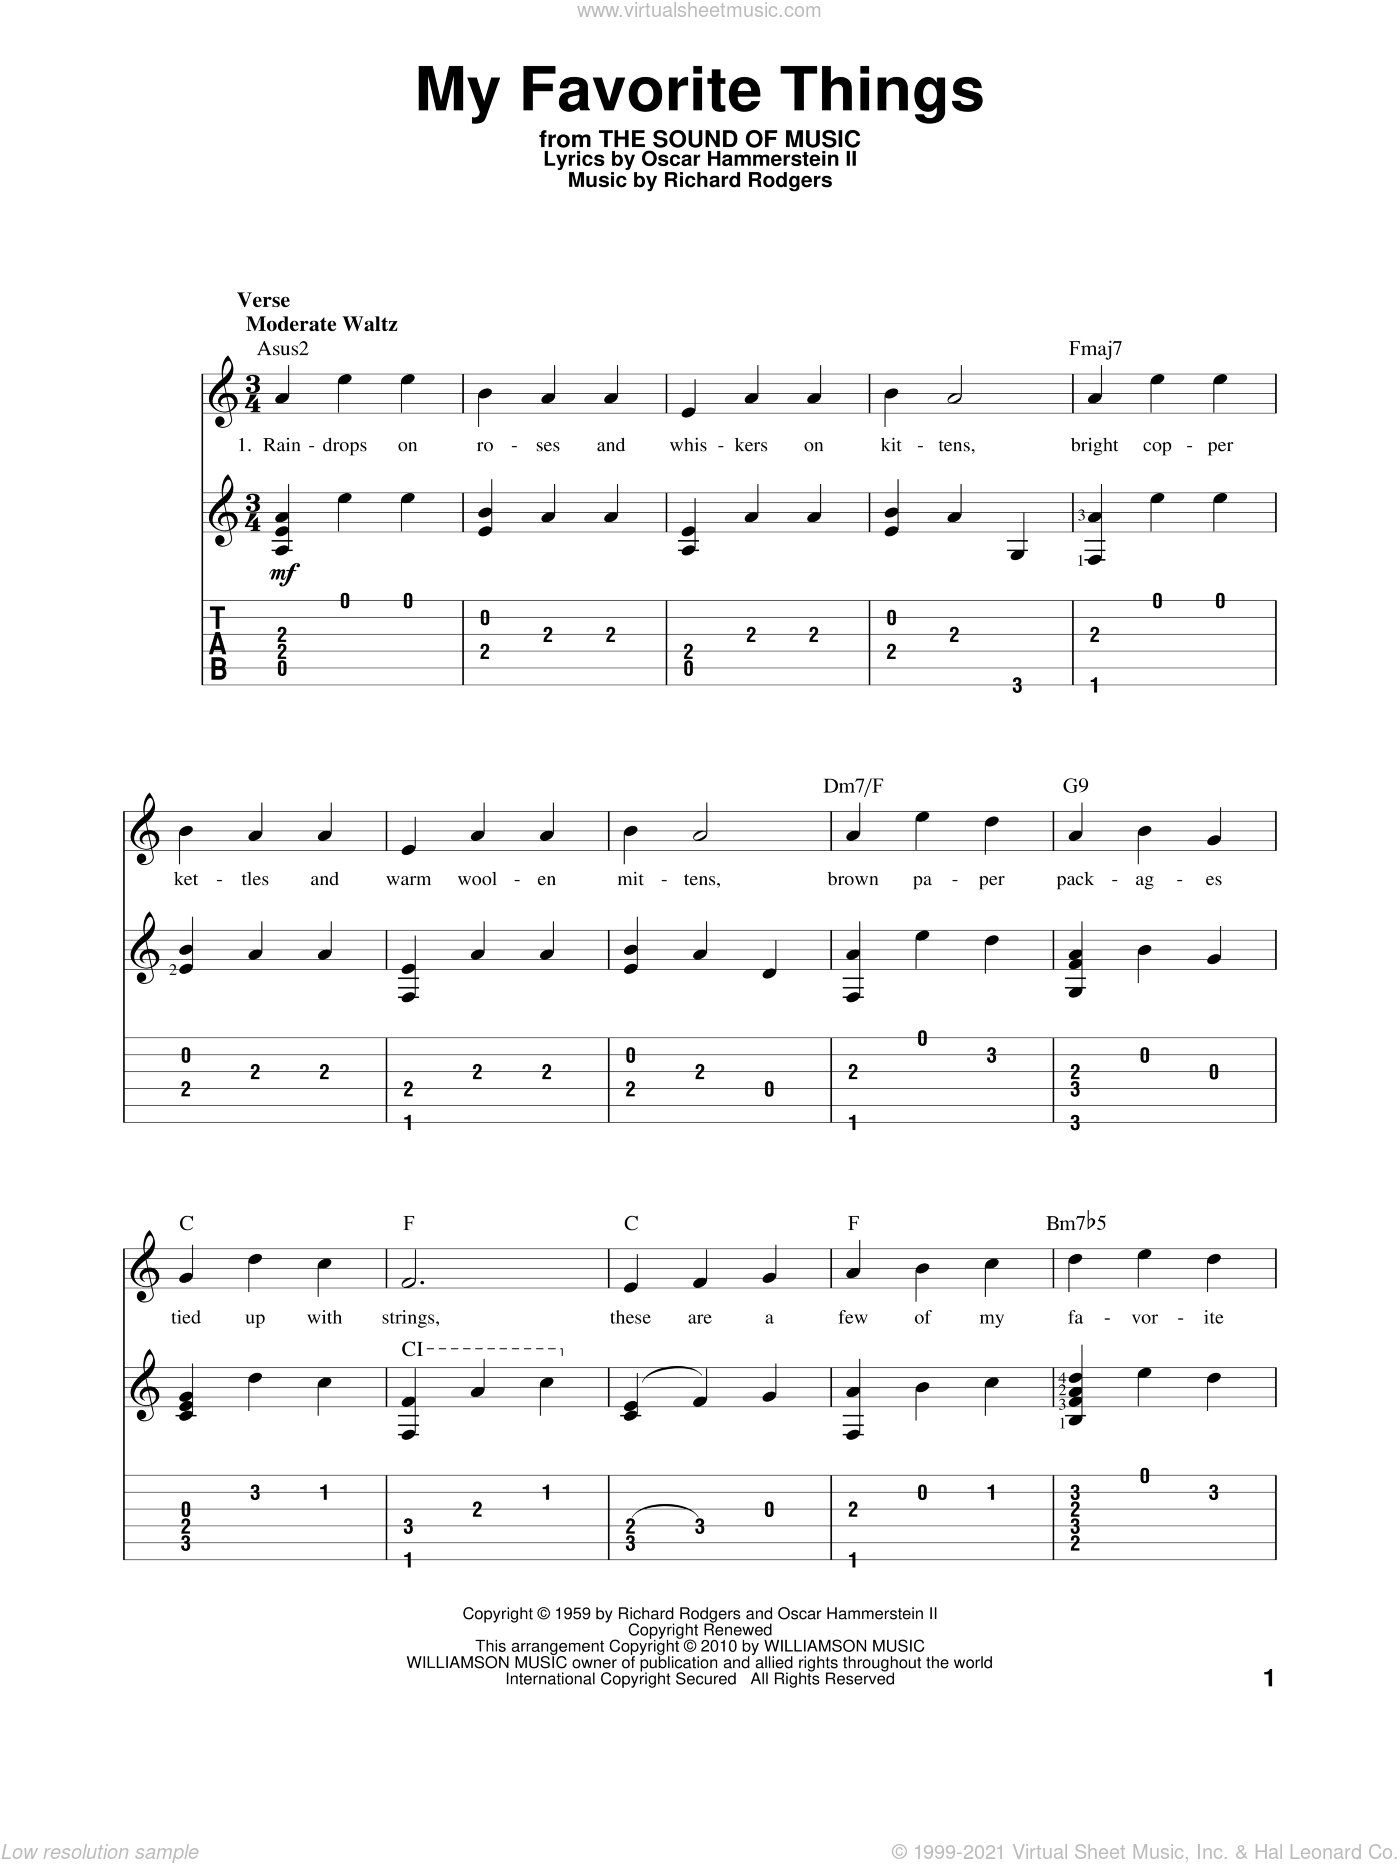 My Favorite Things sheet music for guitar solo by Rodgers & Hammerstein, The Sound Of Music (Musical), Oscar II Hammerstein and Richard Rodgers, intermediate skill level